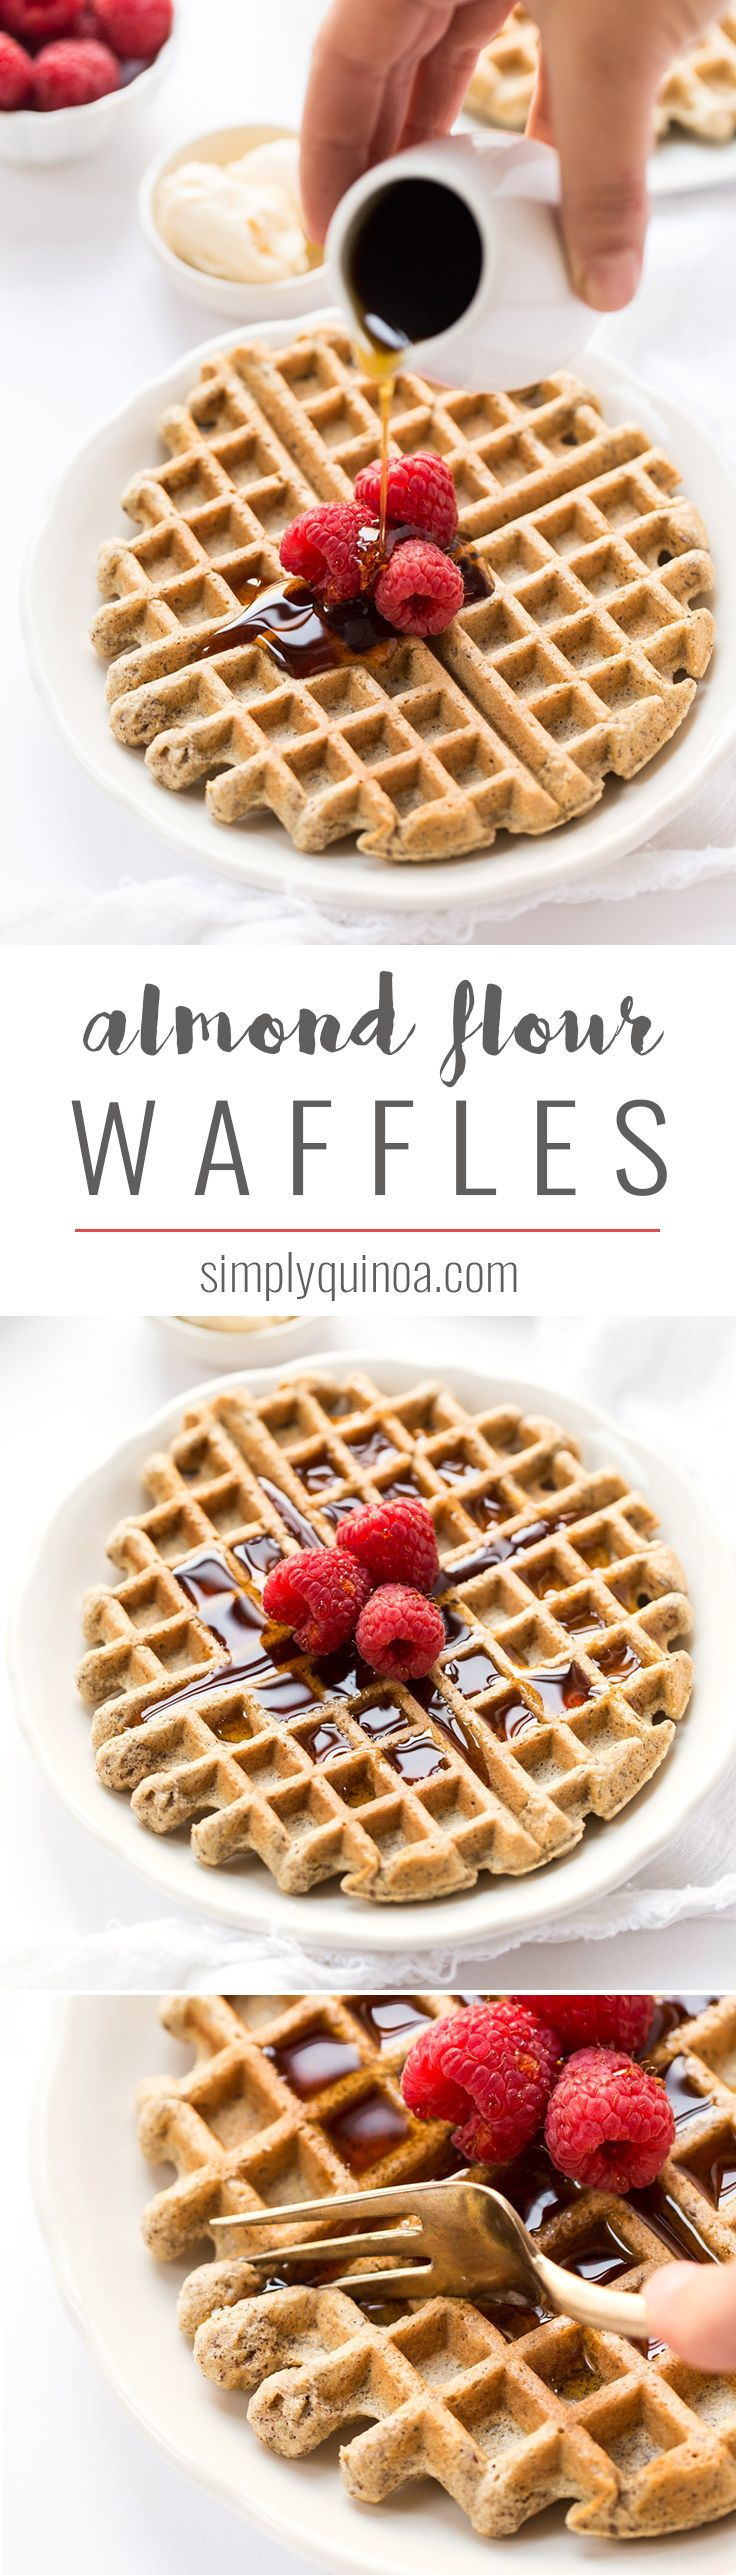 These ALMOND FLOUR WAFFLES are what breakfast dreams are made of! With a blend of wholesome, high-protein flours they're hearty and fluffy at the same time! feat. @almondbreeze #partner